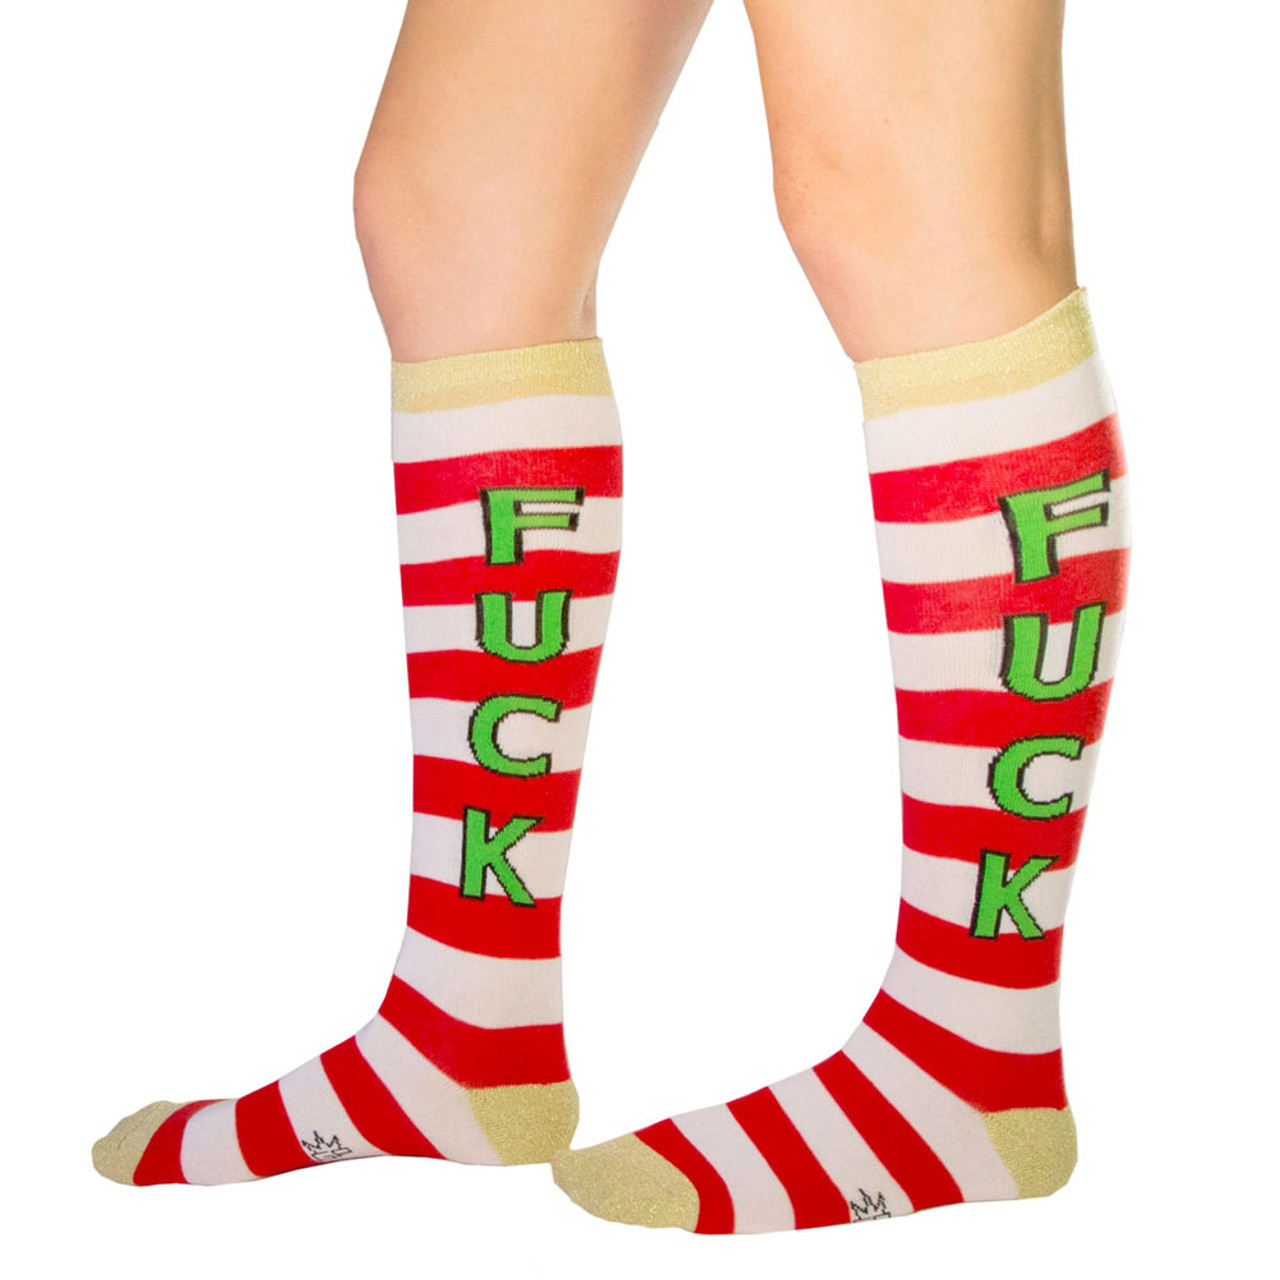 031380bb6 Men s or Women s F CK Christmas Holiday Striped Knee High Socks - Purple  Leopard Boutique